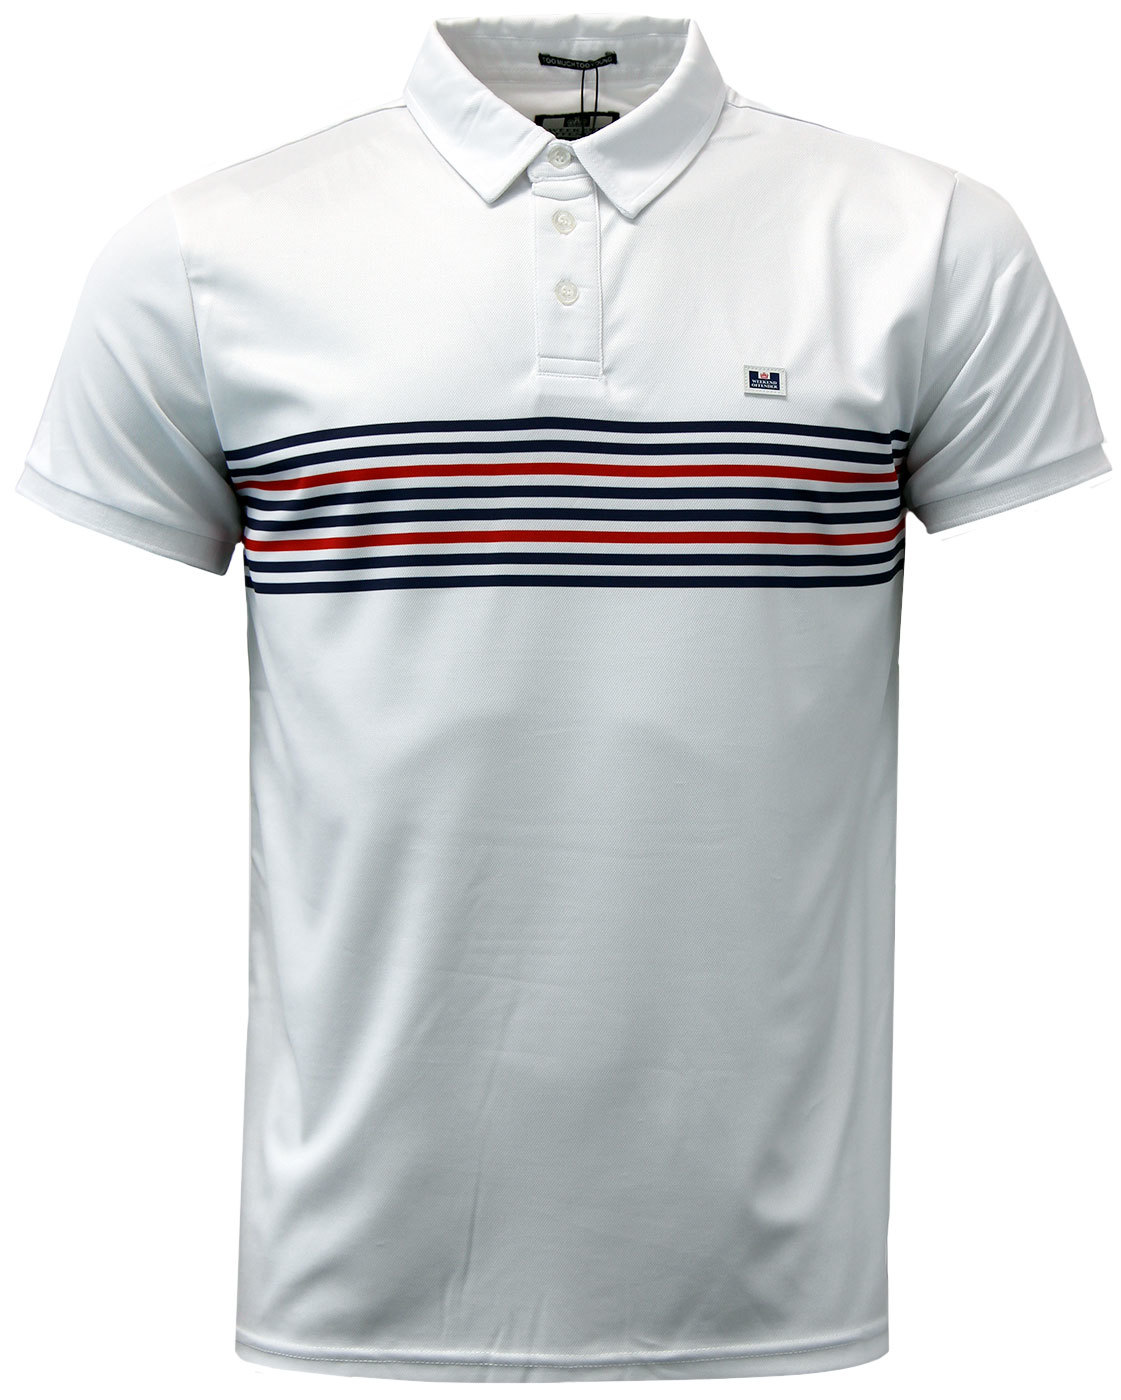 Bollo WEEKEND OFFENDER Retro Casuals Stripe Polo